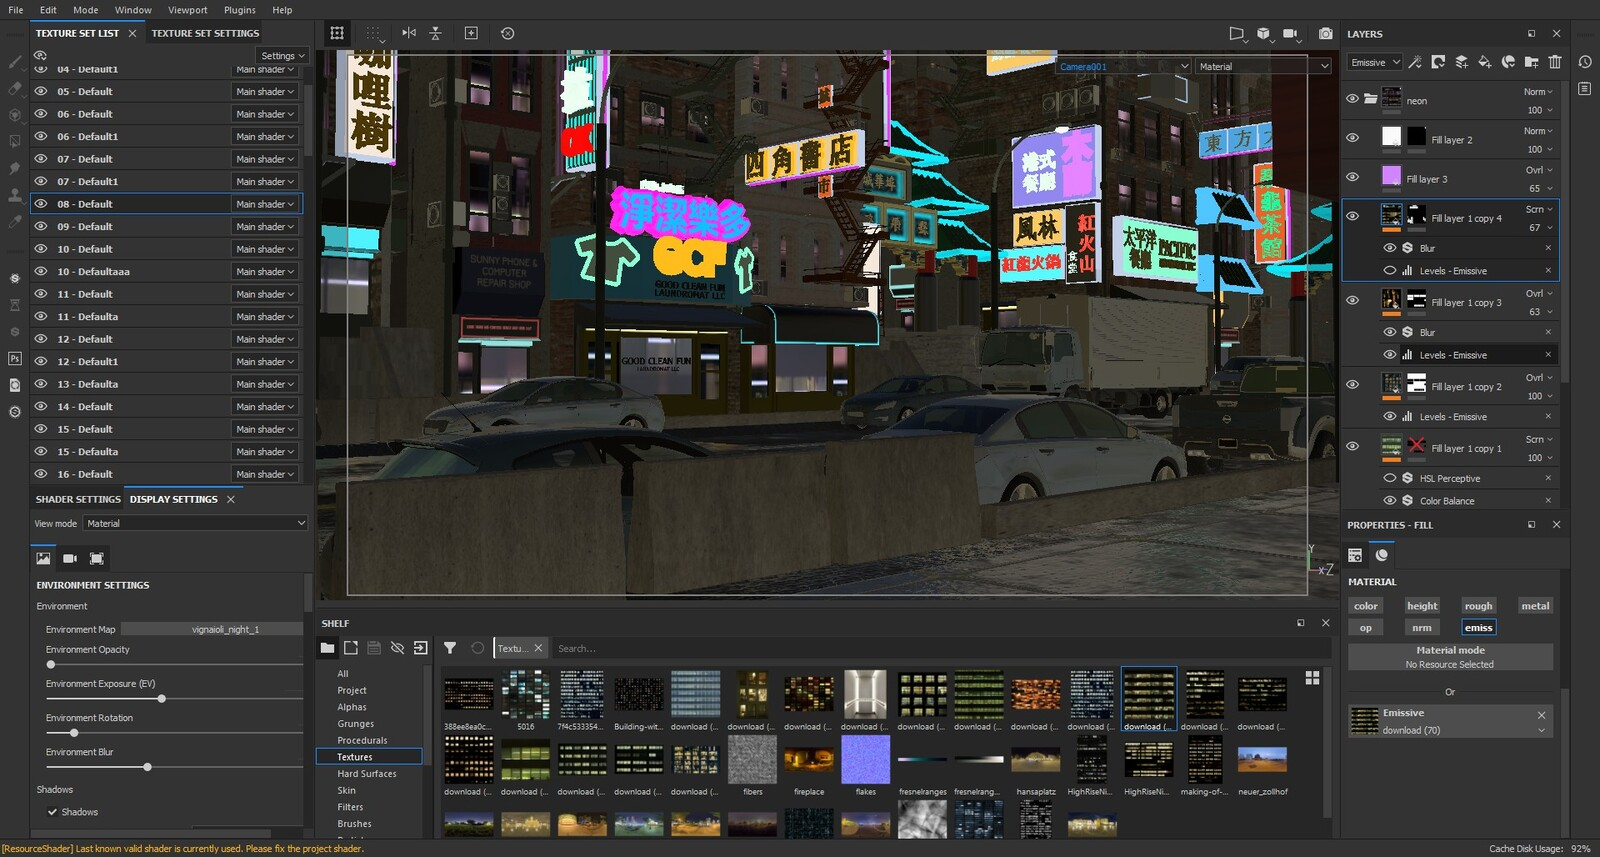 Substance painter screenshot. Loaded the entire 3d scene, textured and rendered completely in that app.